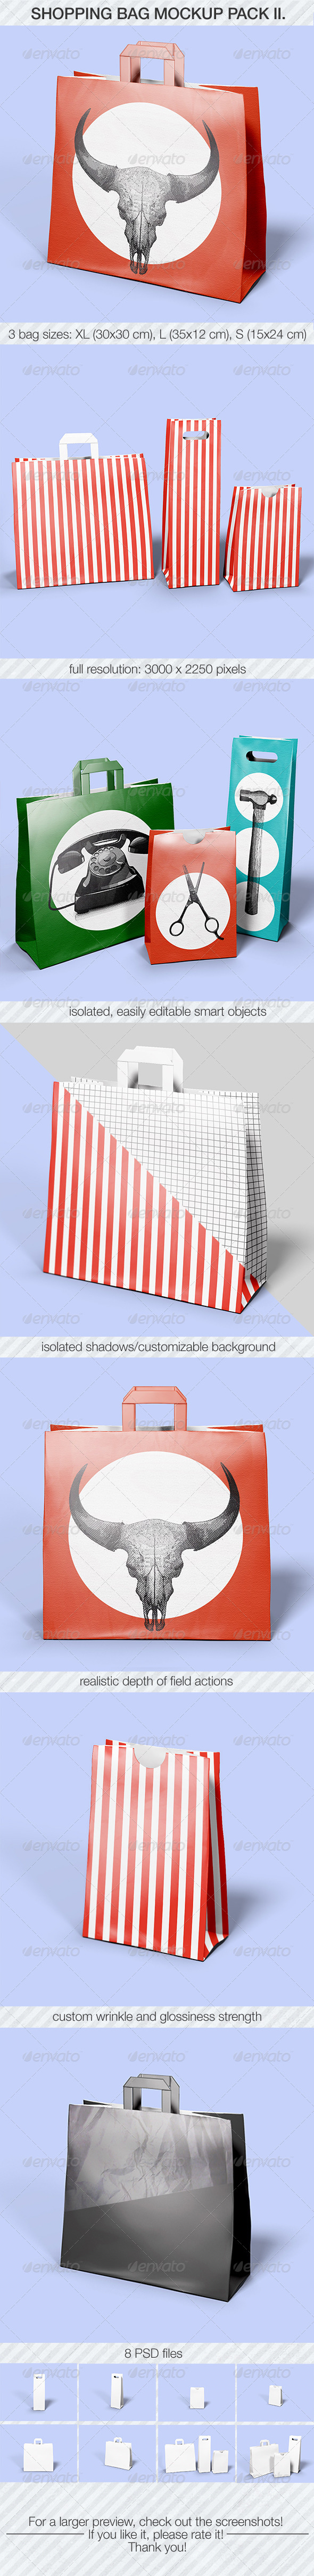 GraphicRiver Shopping Bag Mockup Pack II 7291582